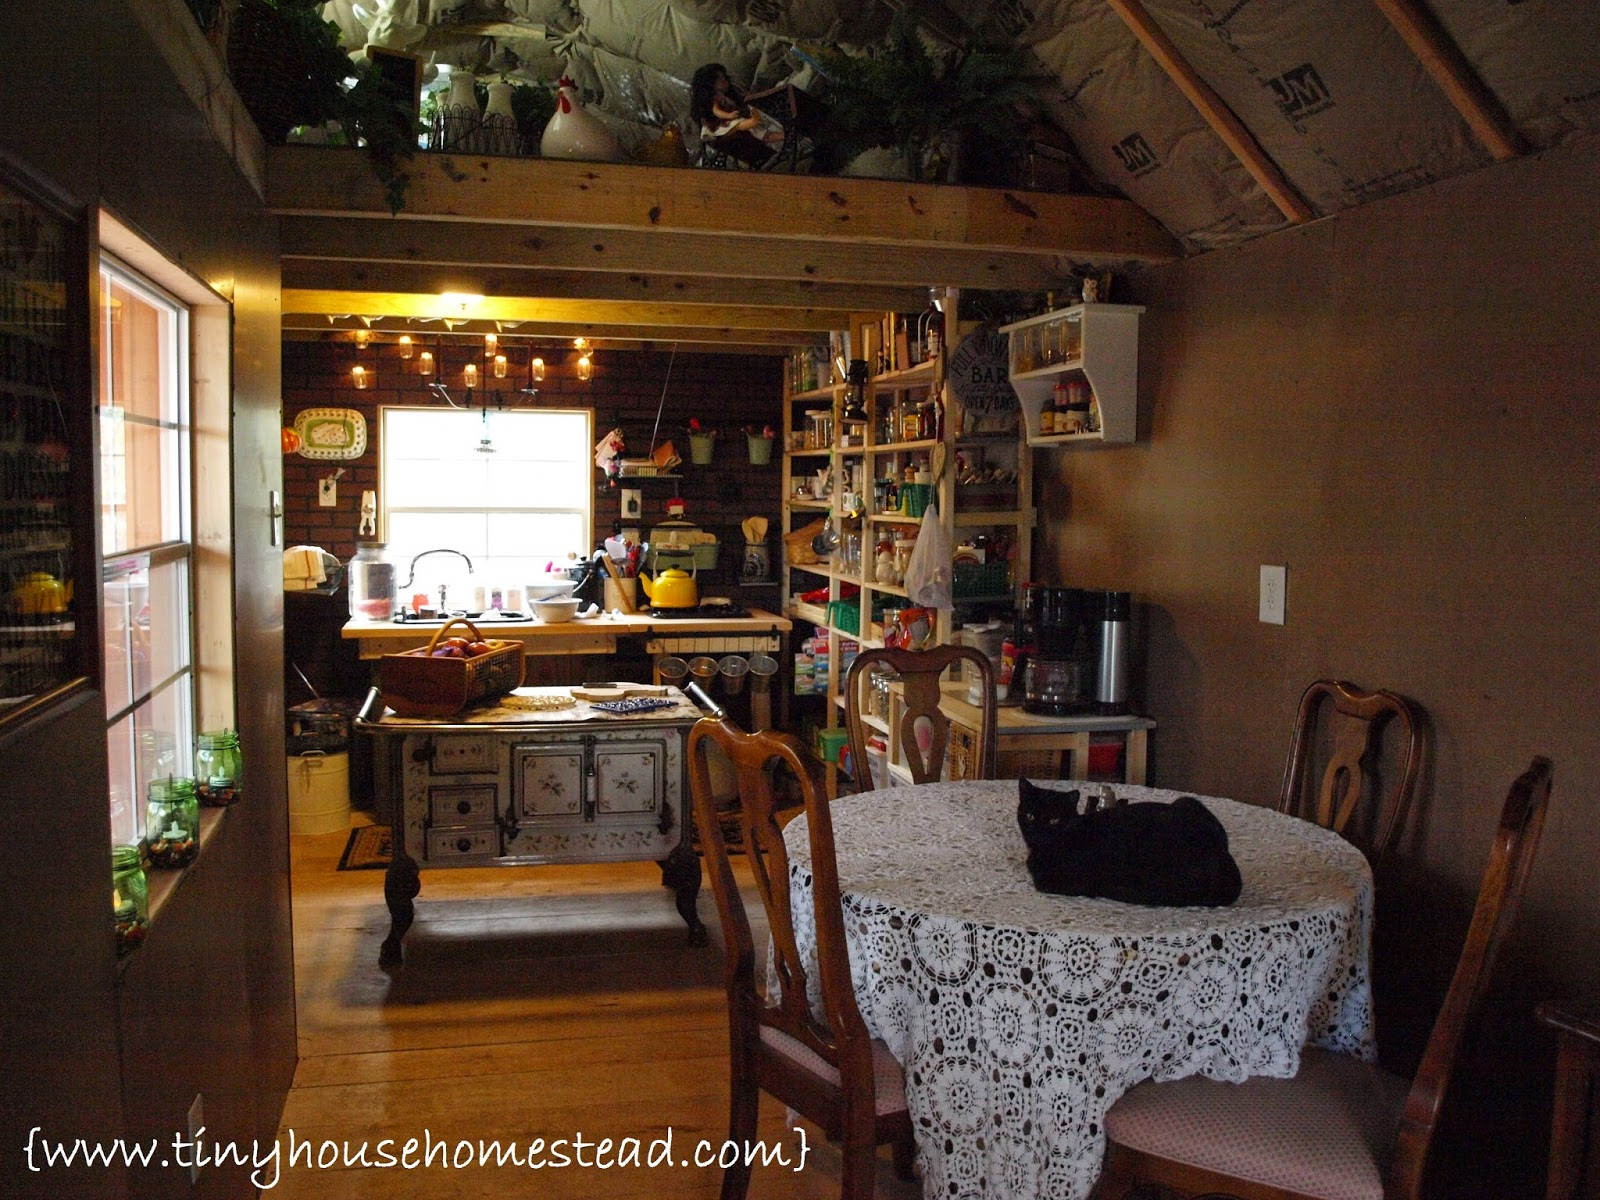 Tiny house homestead living in a tiny house or shouse for Shouse shed house